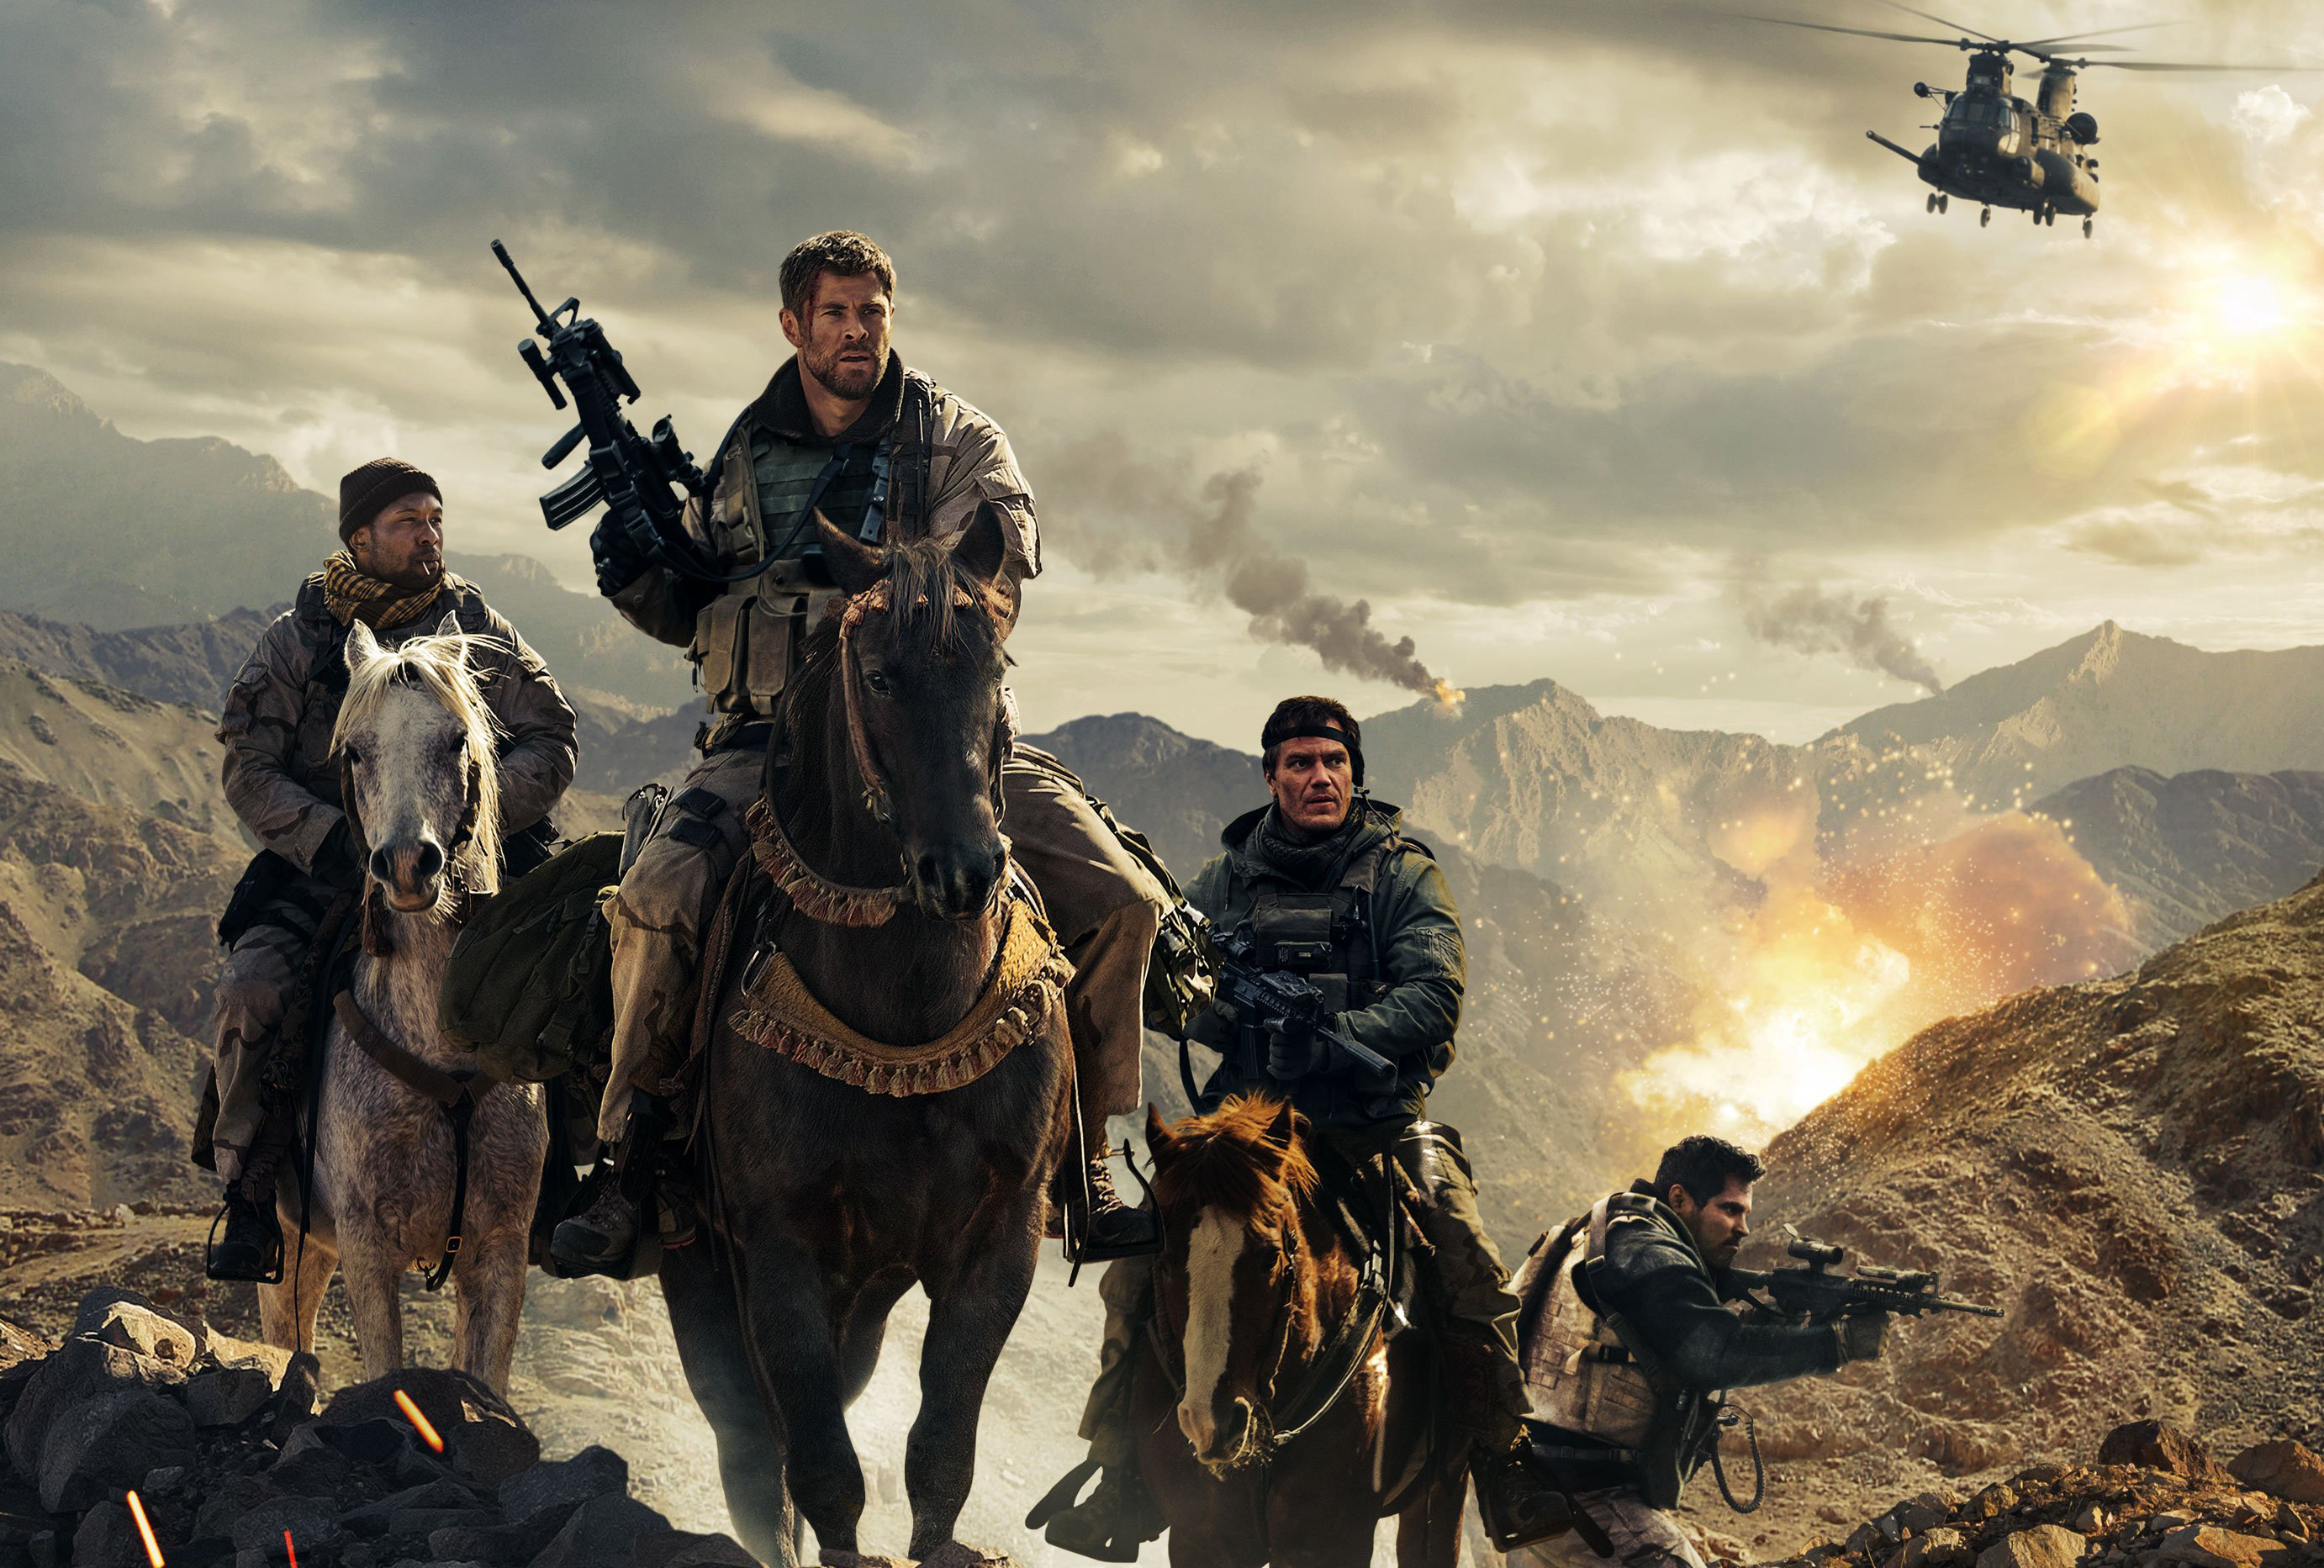 12 Strong Movie, HD Movies, 4k Wallpapers, Images, Backgrounds, Photos and Pictures